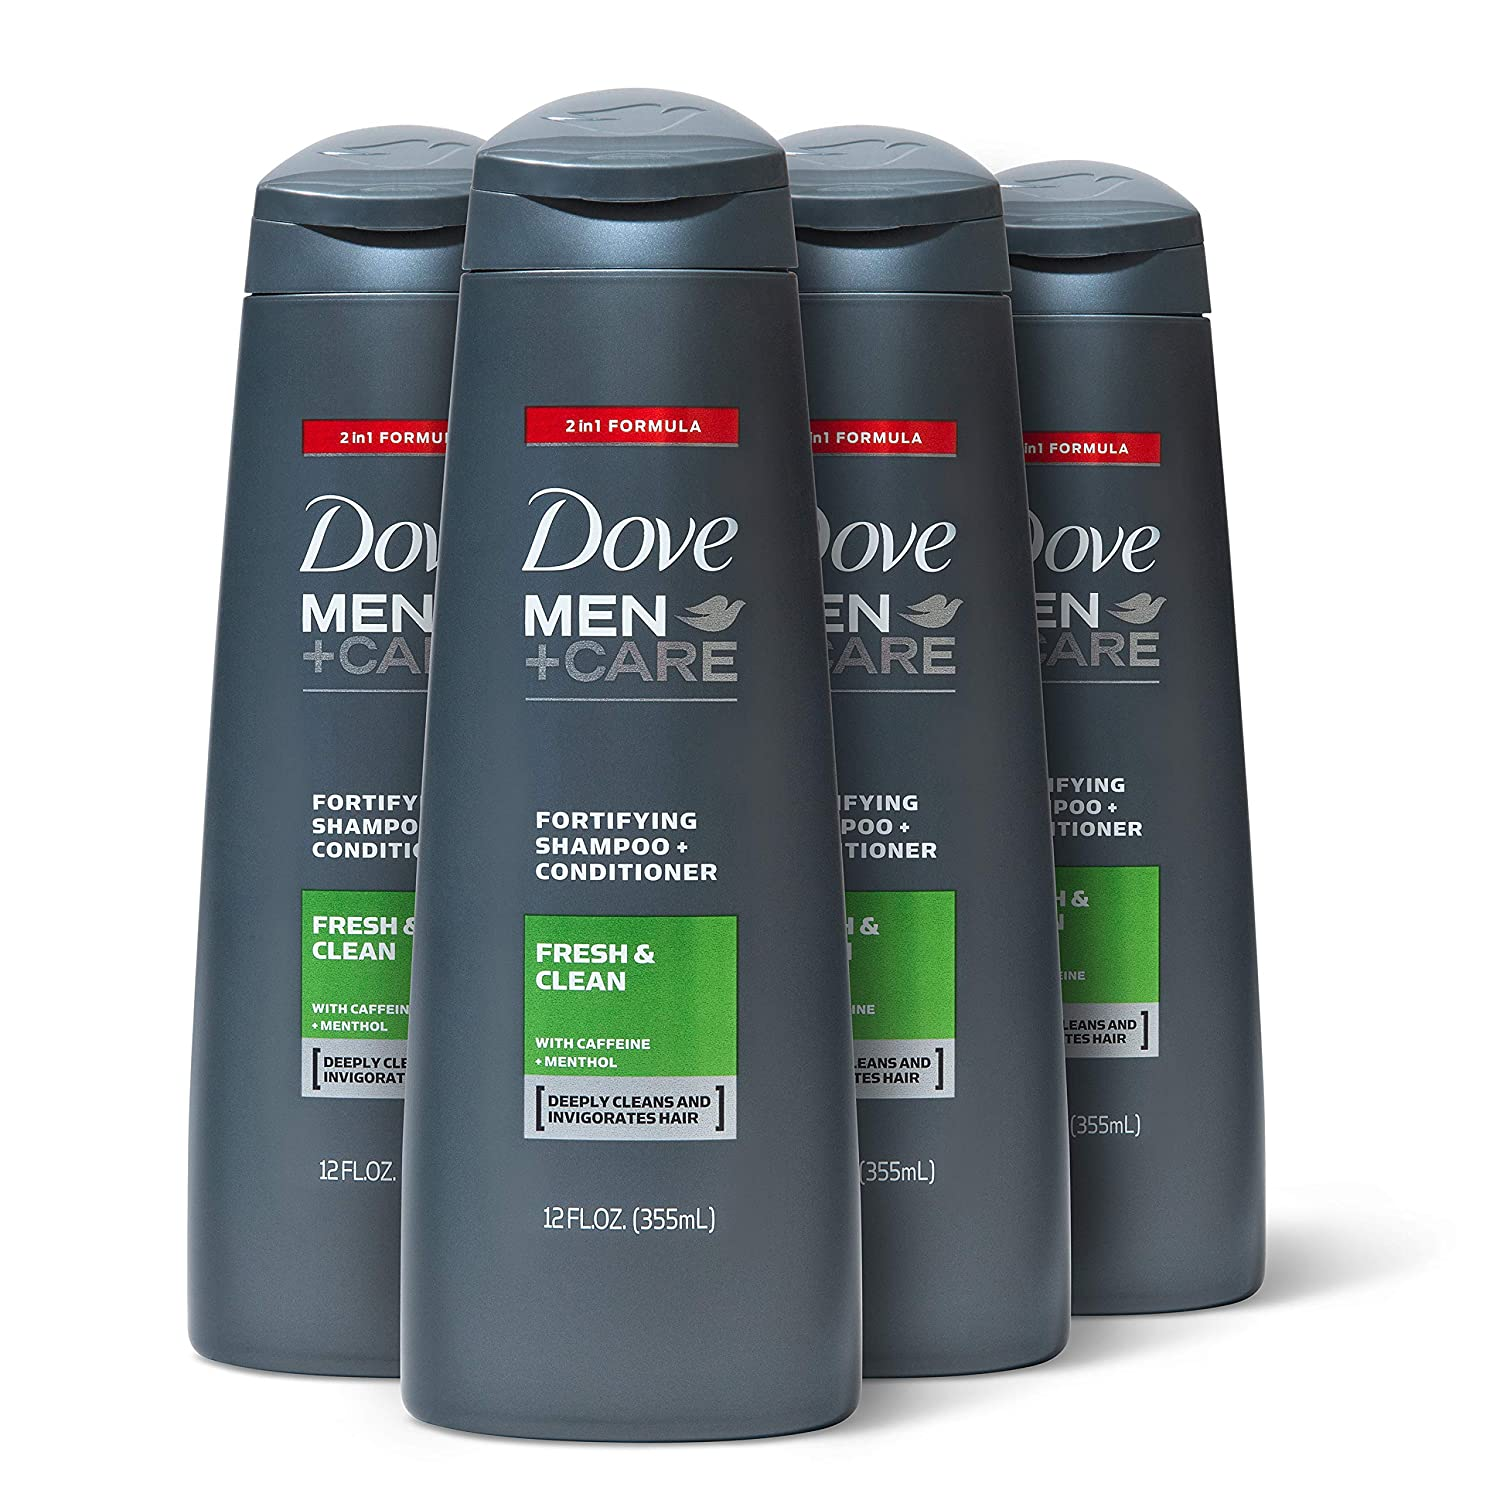 Dove Men+Care 9 in 9 Shampoo and Conditioner, Fresh and Clean, 99 oz, 9  count